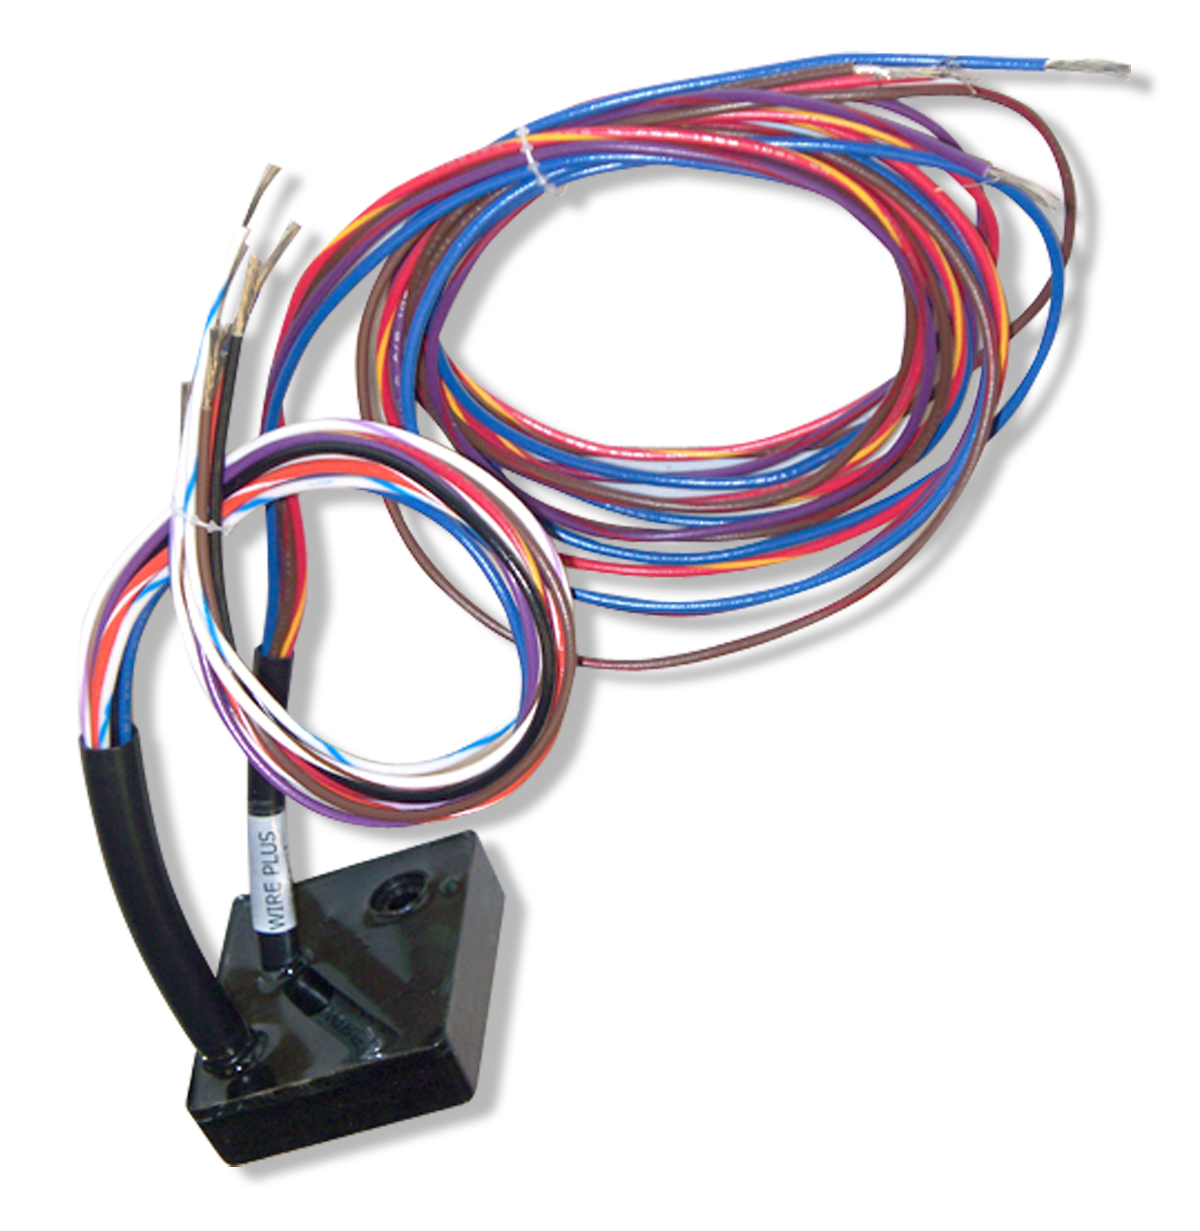 Ride And Read News By Madness Photography Onno Berserk Wieringa Wiring Harness For Those Interested In Obtaining More Information On Wire Plus You Can Reach Them At 620 221 2417 Or Check Out Online Pluscom Email